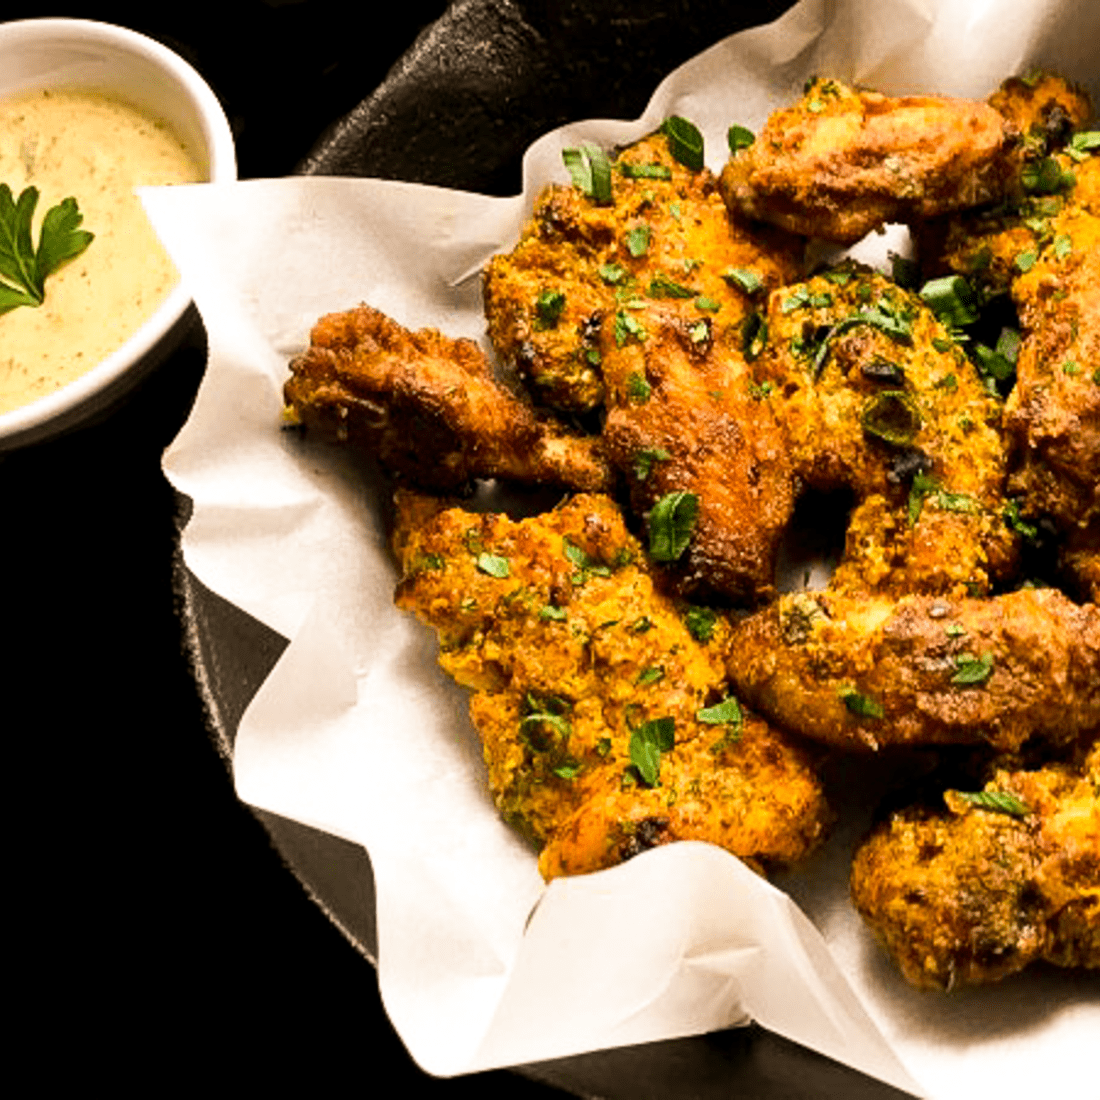 A closeup of gluten free Creole mustard chicken wings and tenders against a black background.